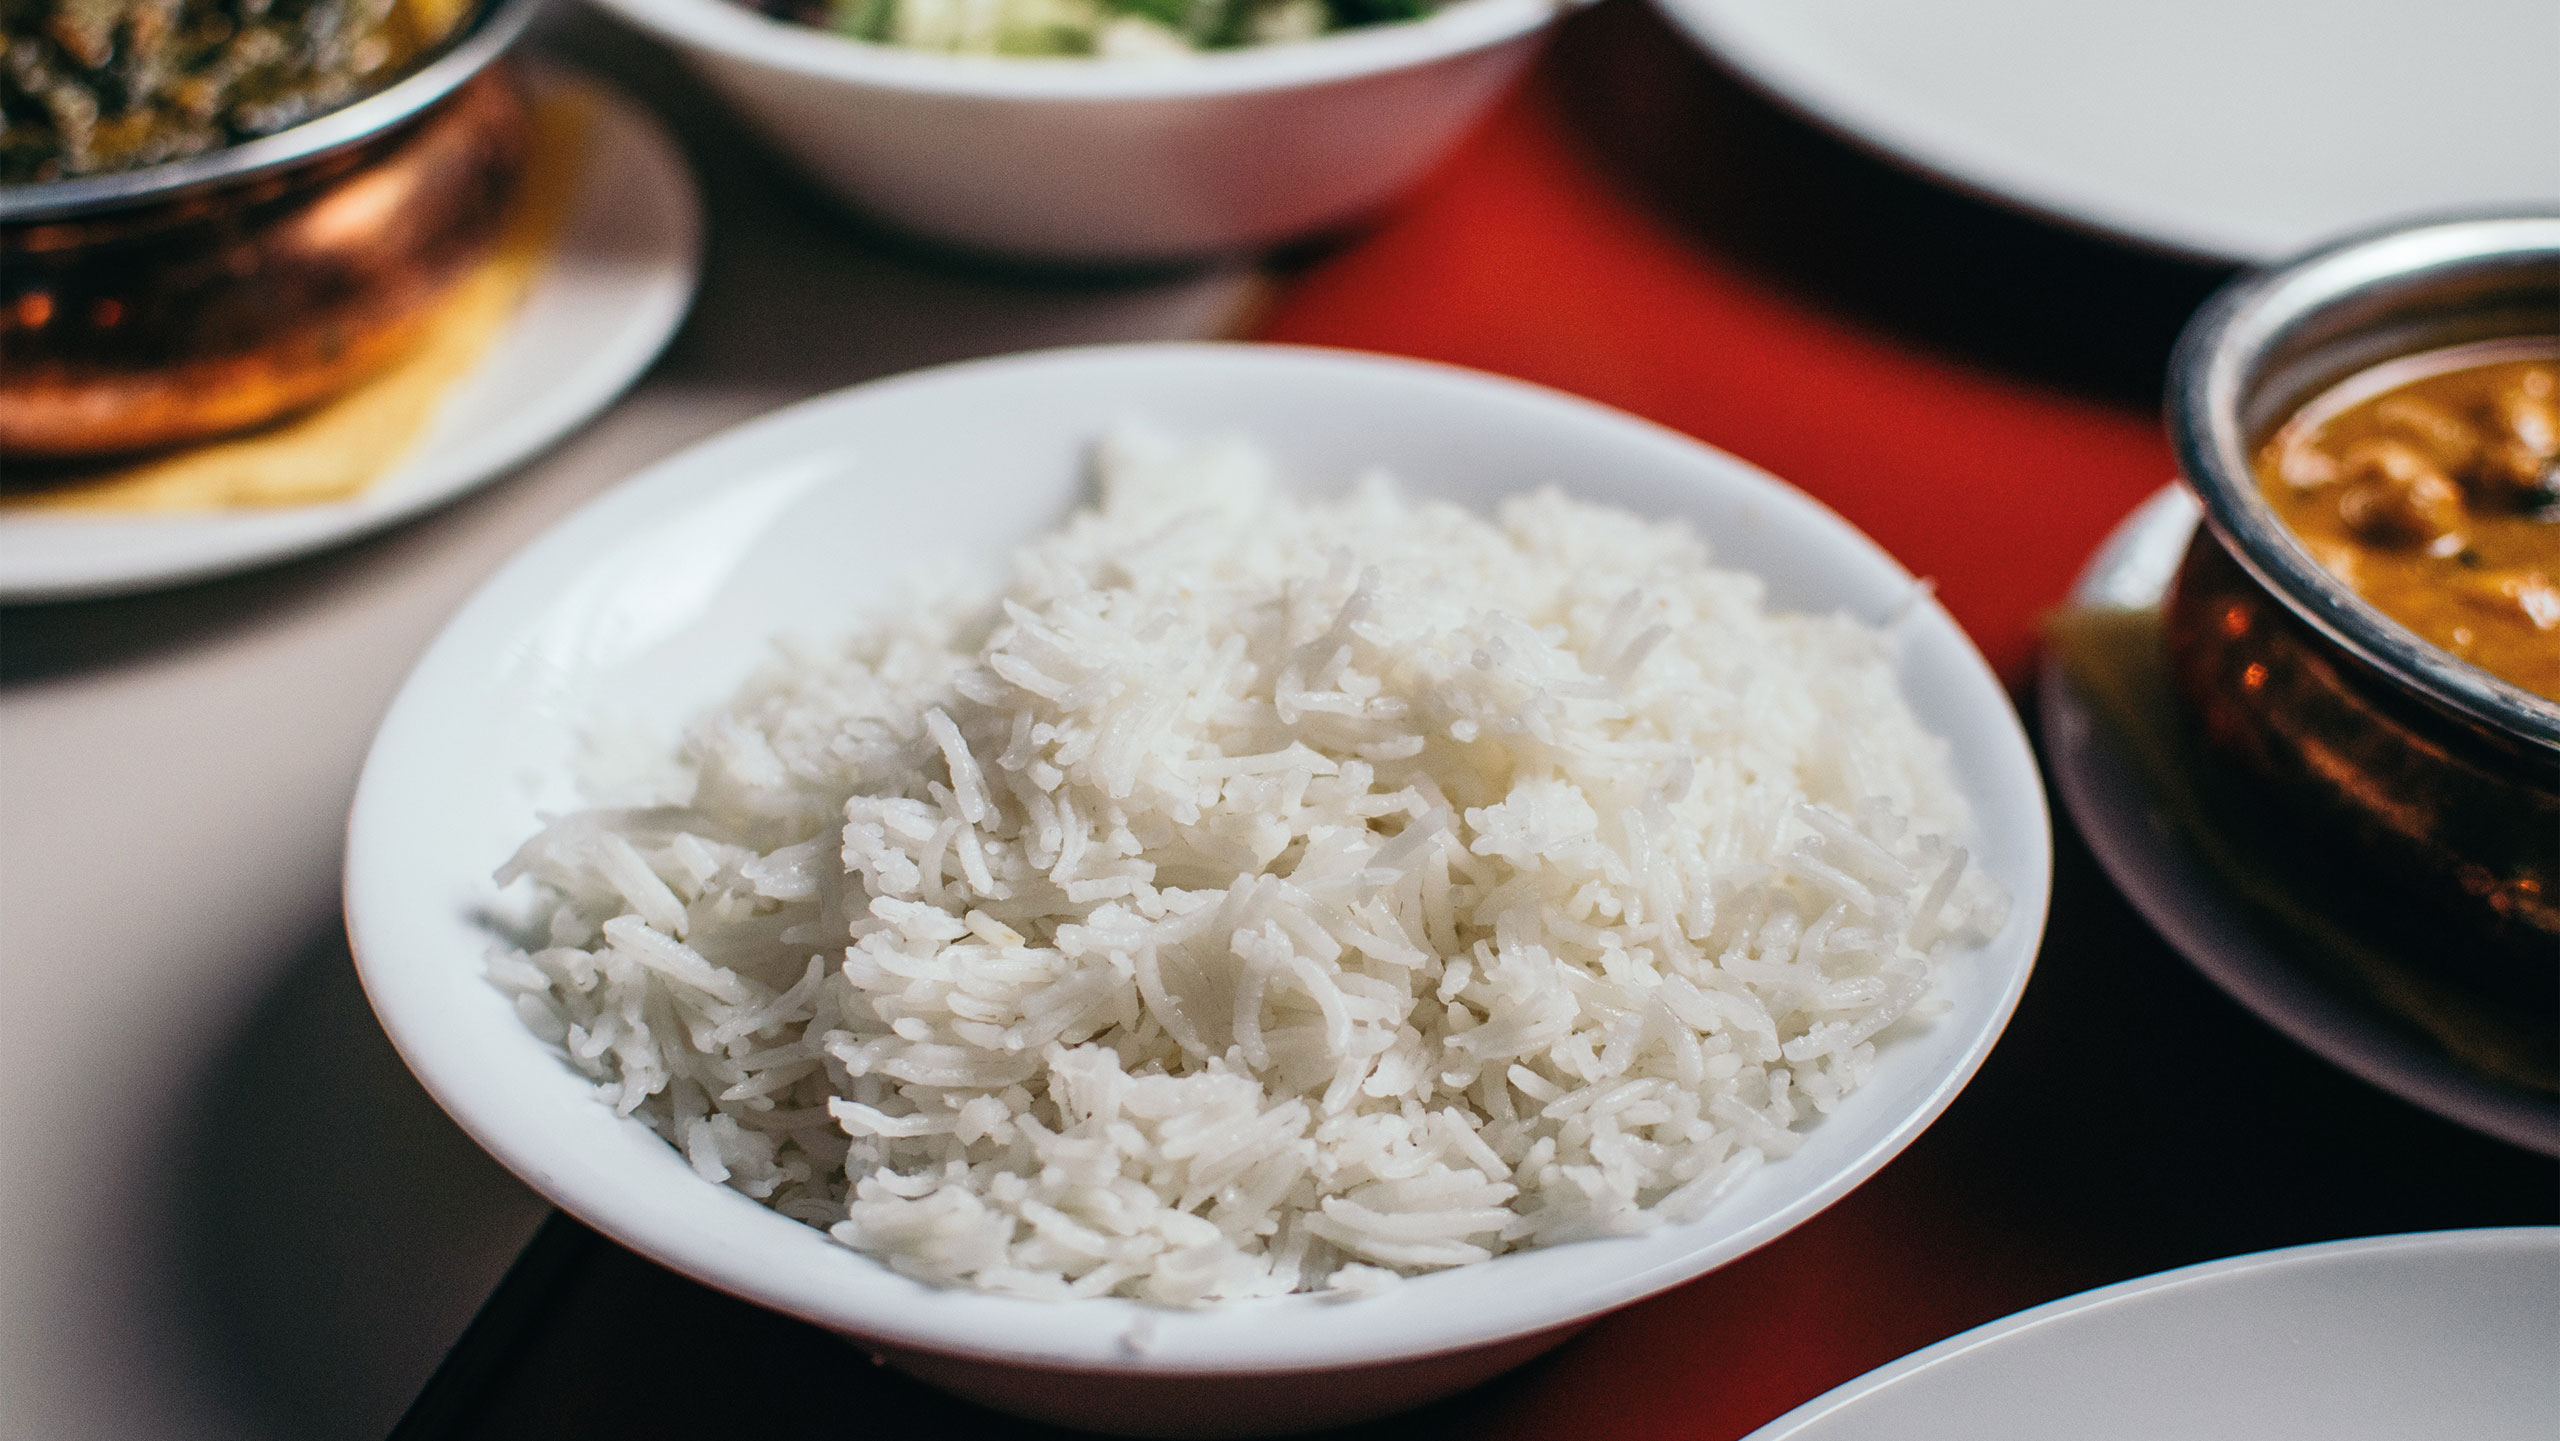 image of white rice in bowl